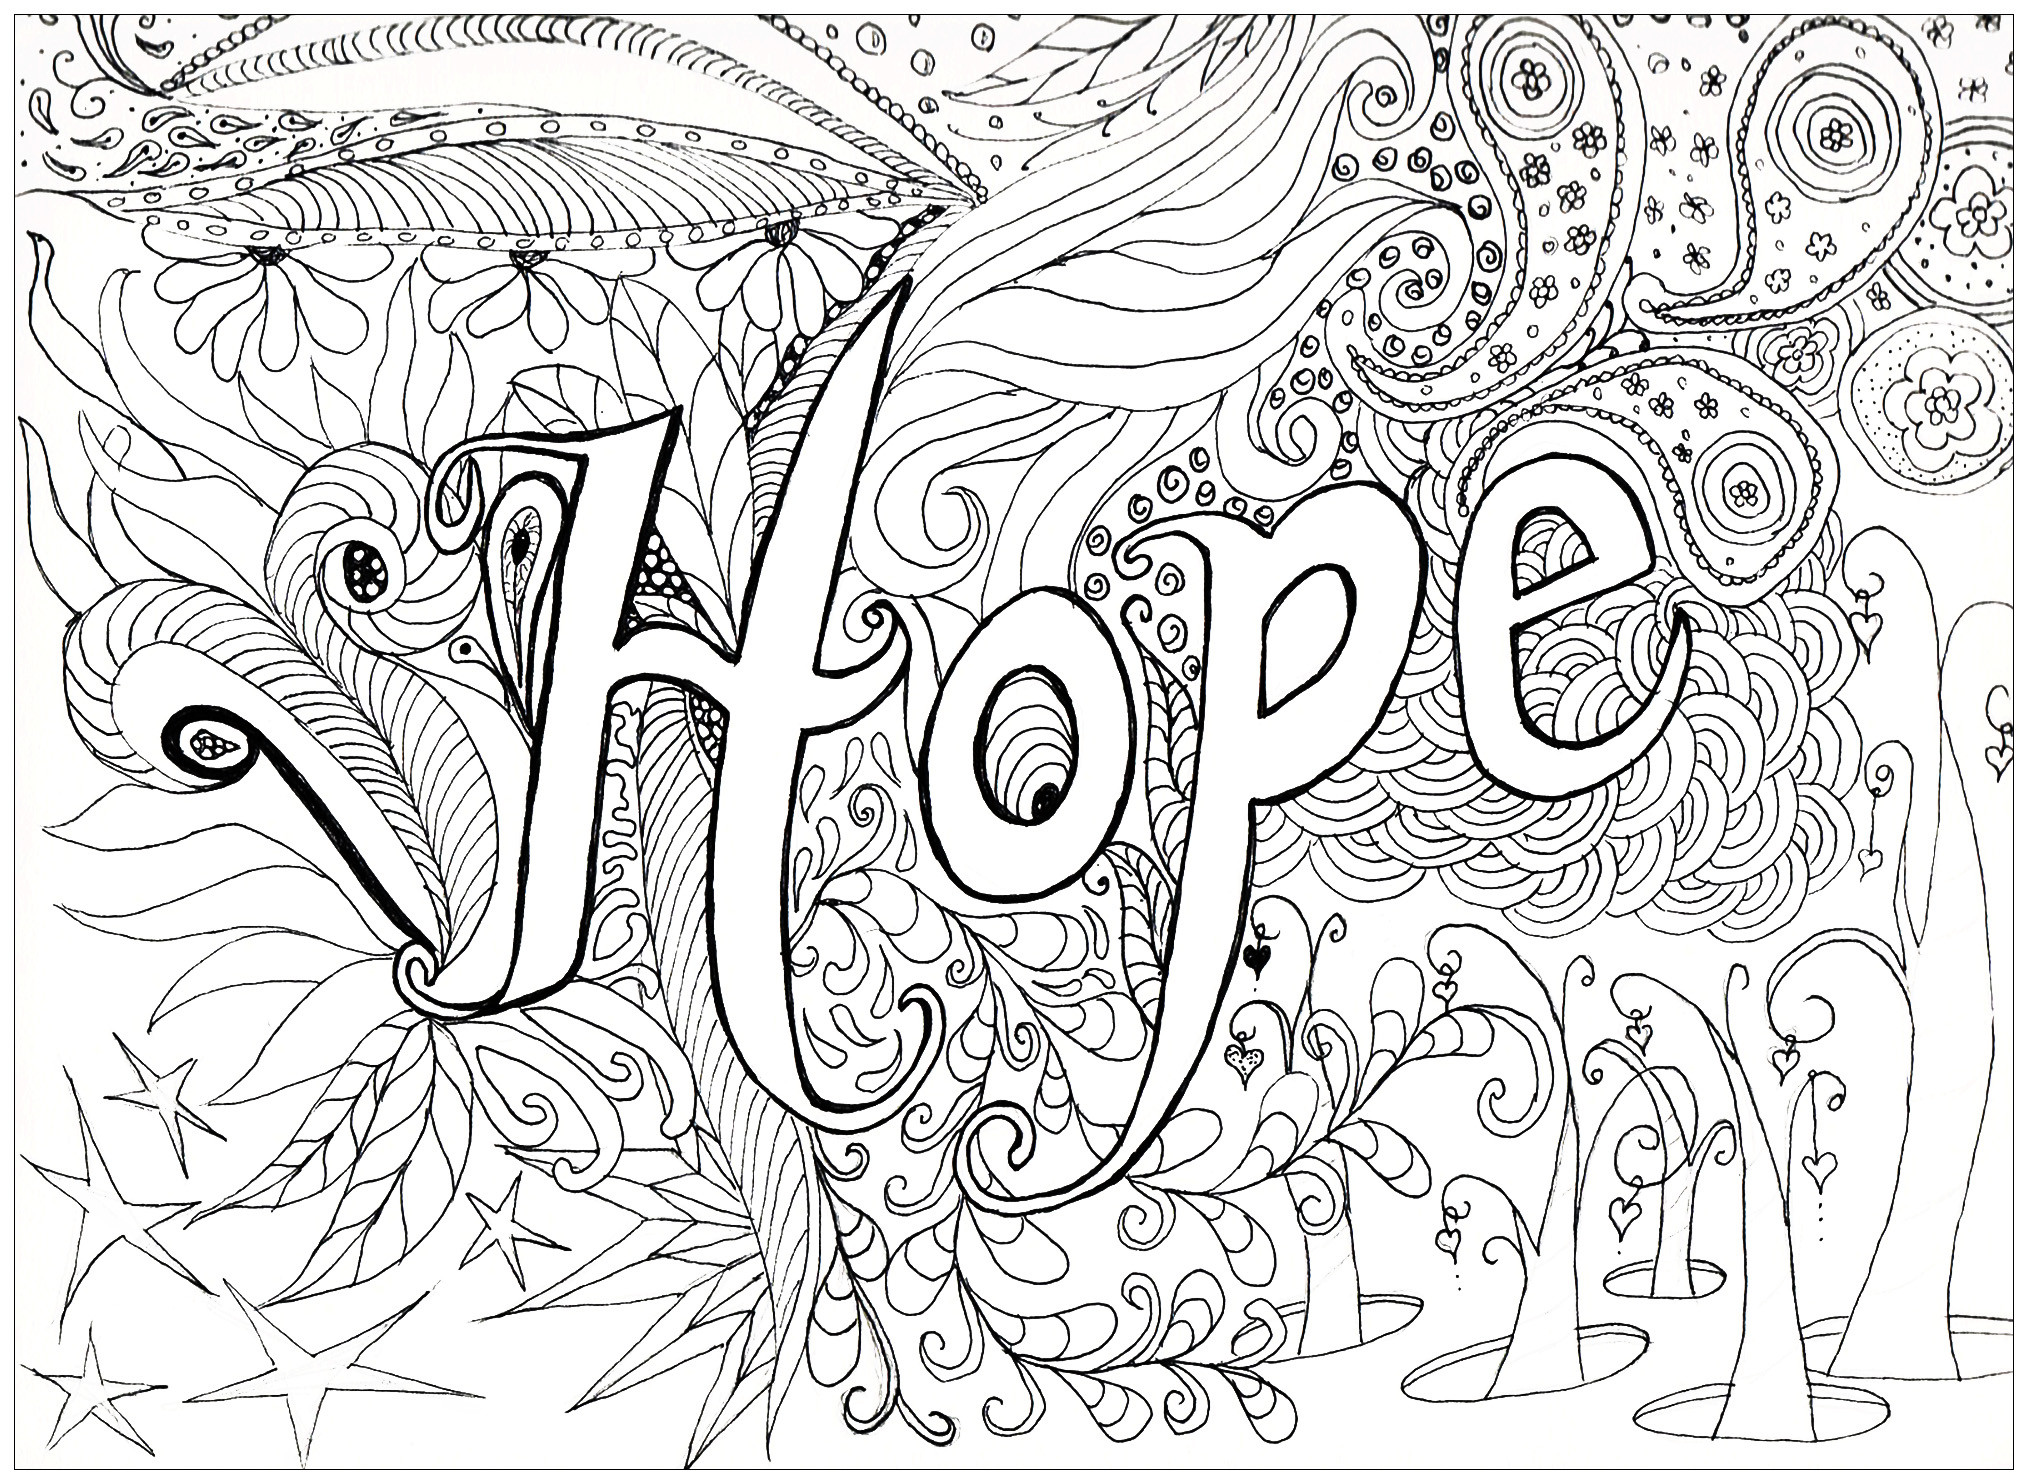 Best ideas about Adult Stress Coloring Books . Save or Pin Hope Anti stress Adult Coloring Pages Page 3 Now.